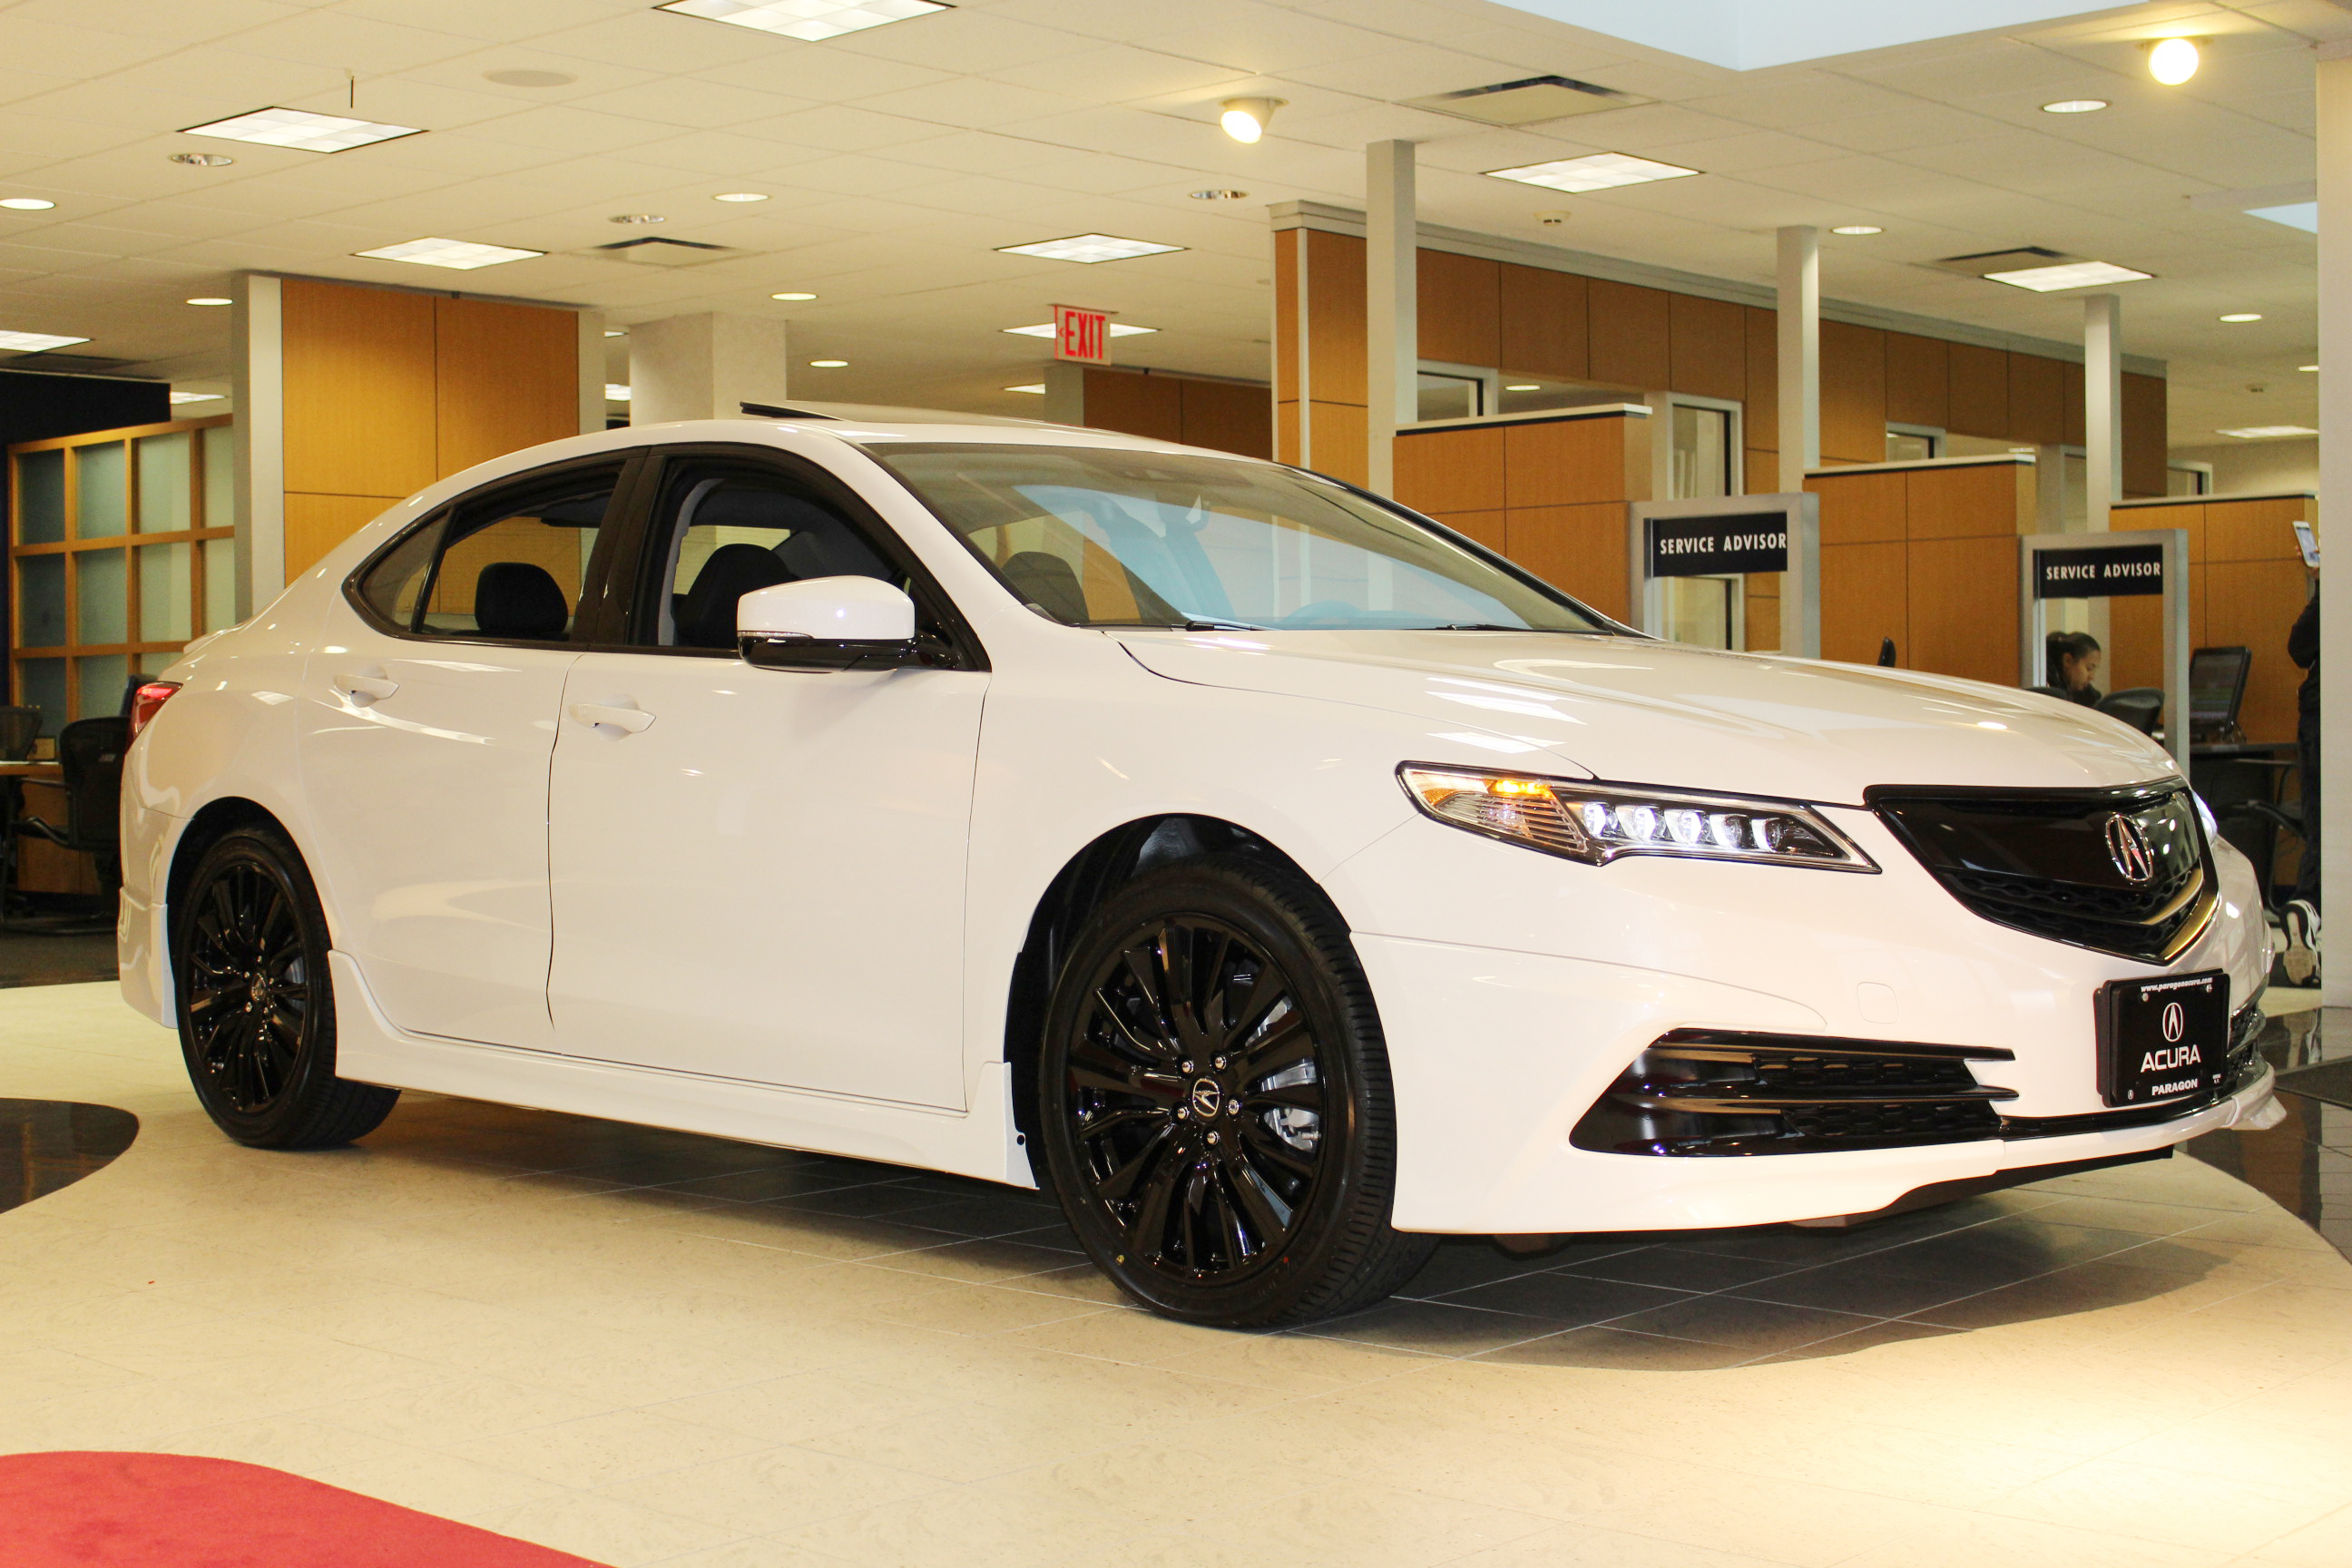 details acura specials marin bay area lease home luxury service